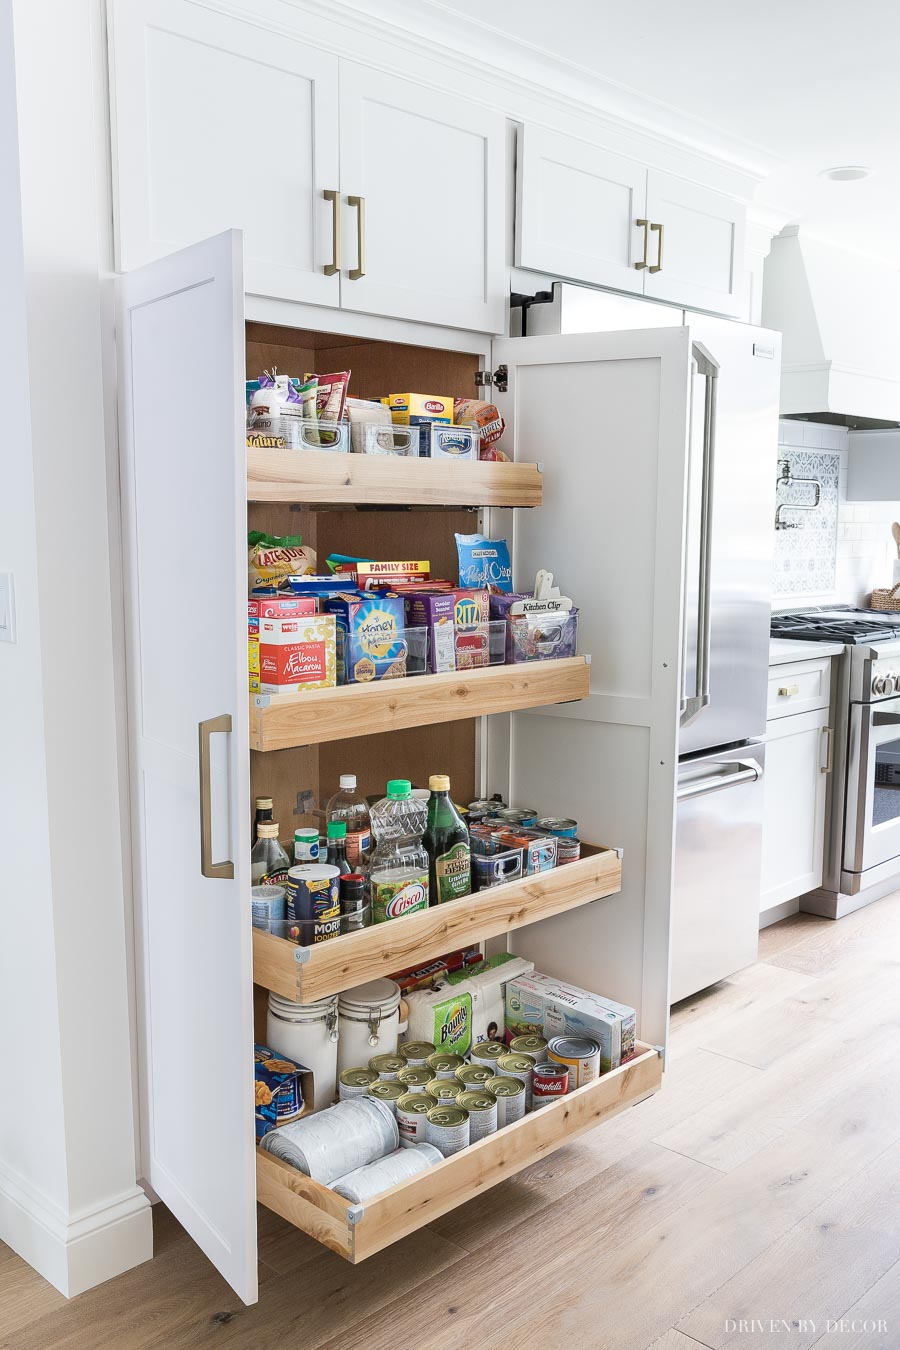 Kitchen Cabinets With Pull Out Shelves Cabinet Storage Organization Ideas From Our New Kitchen